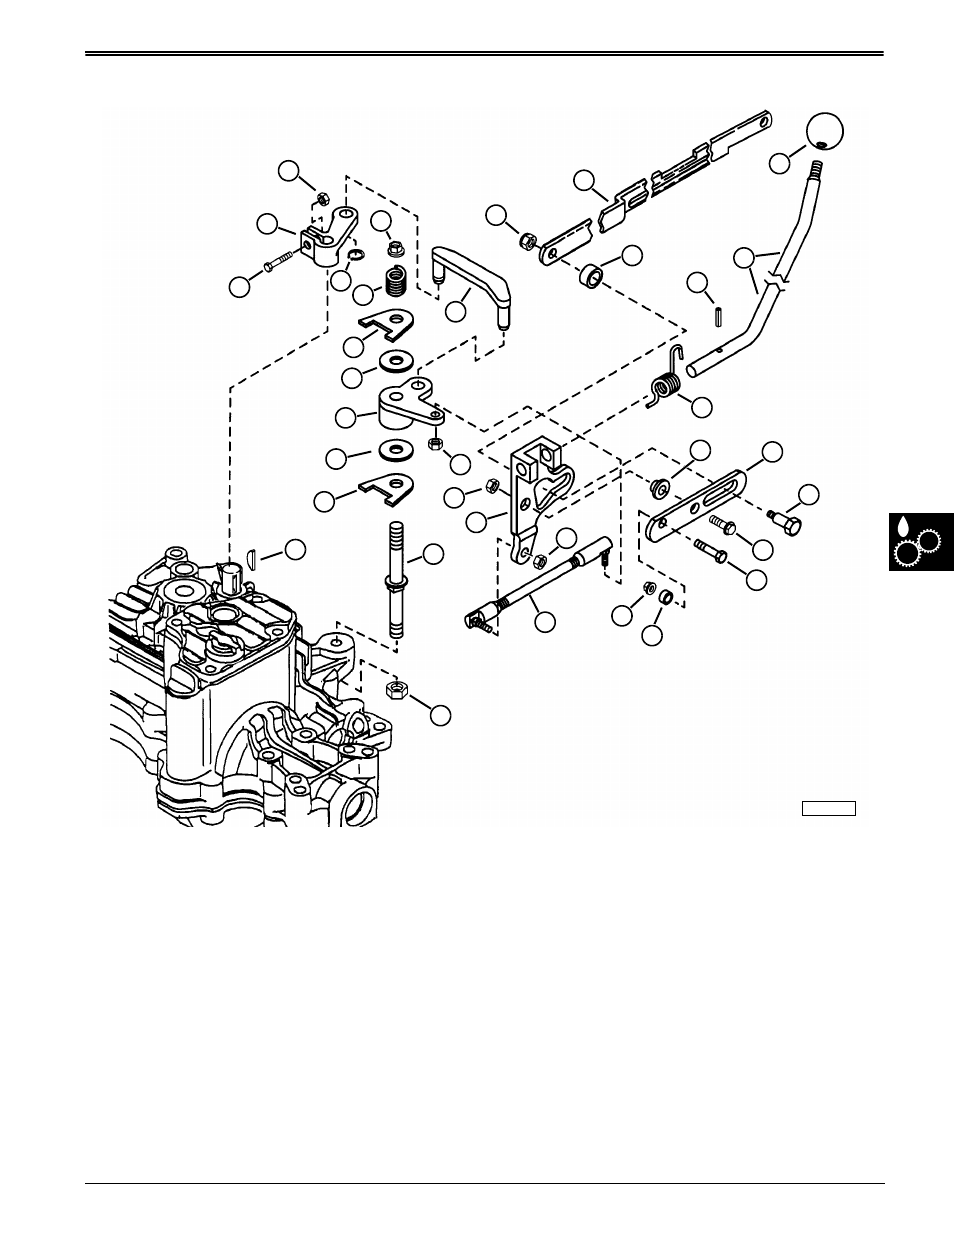 Shift linkage system component location, Component